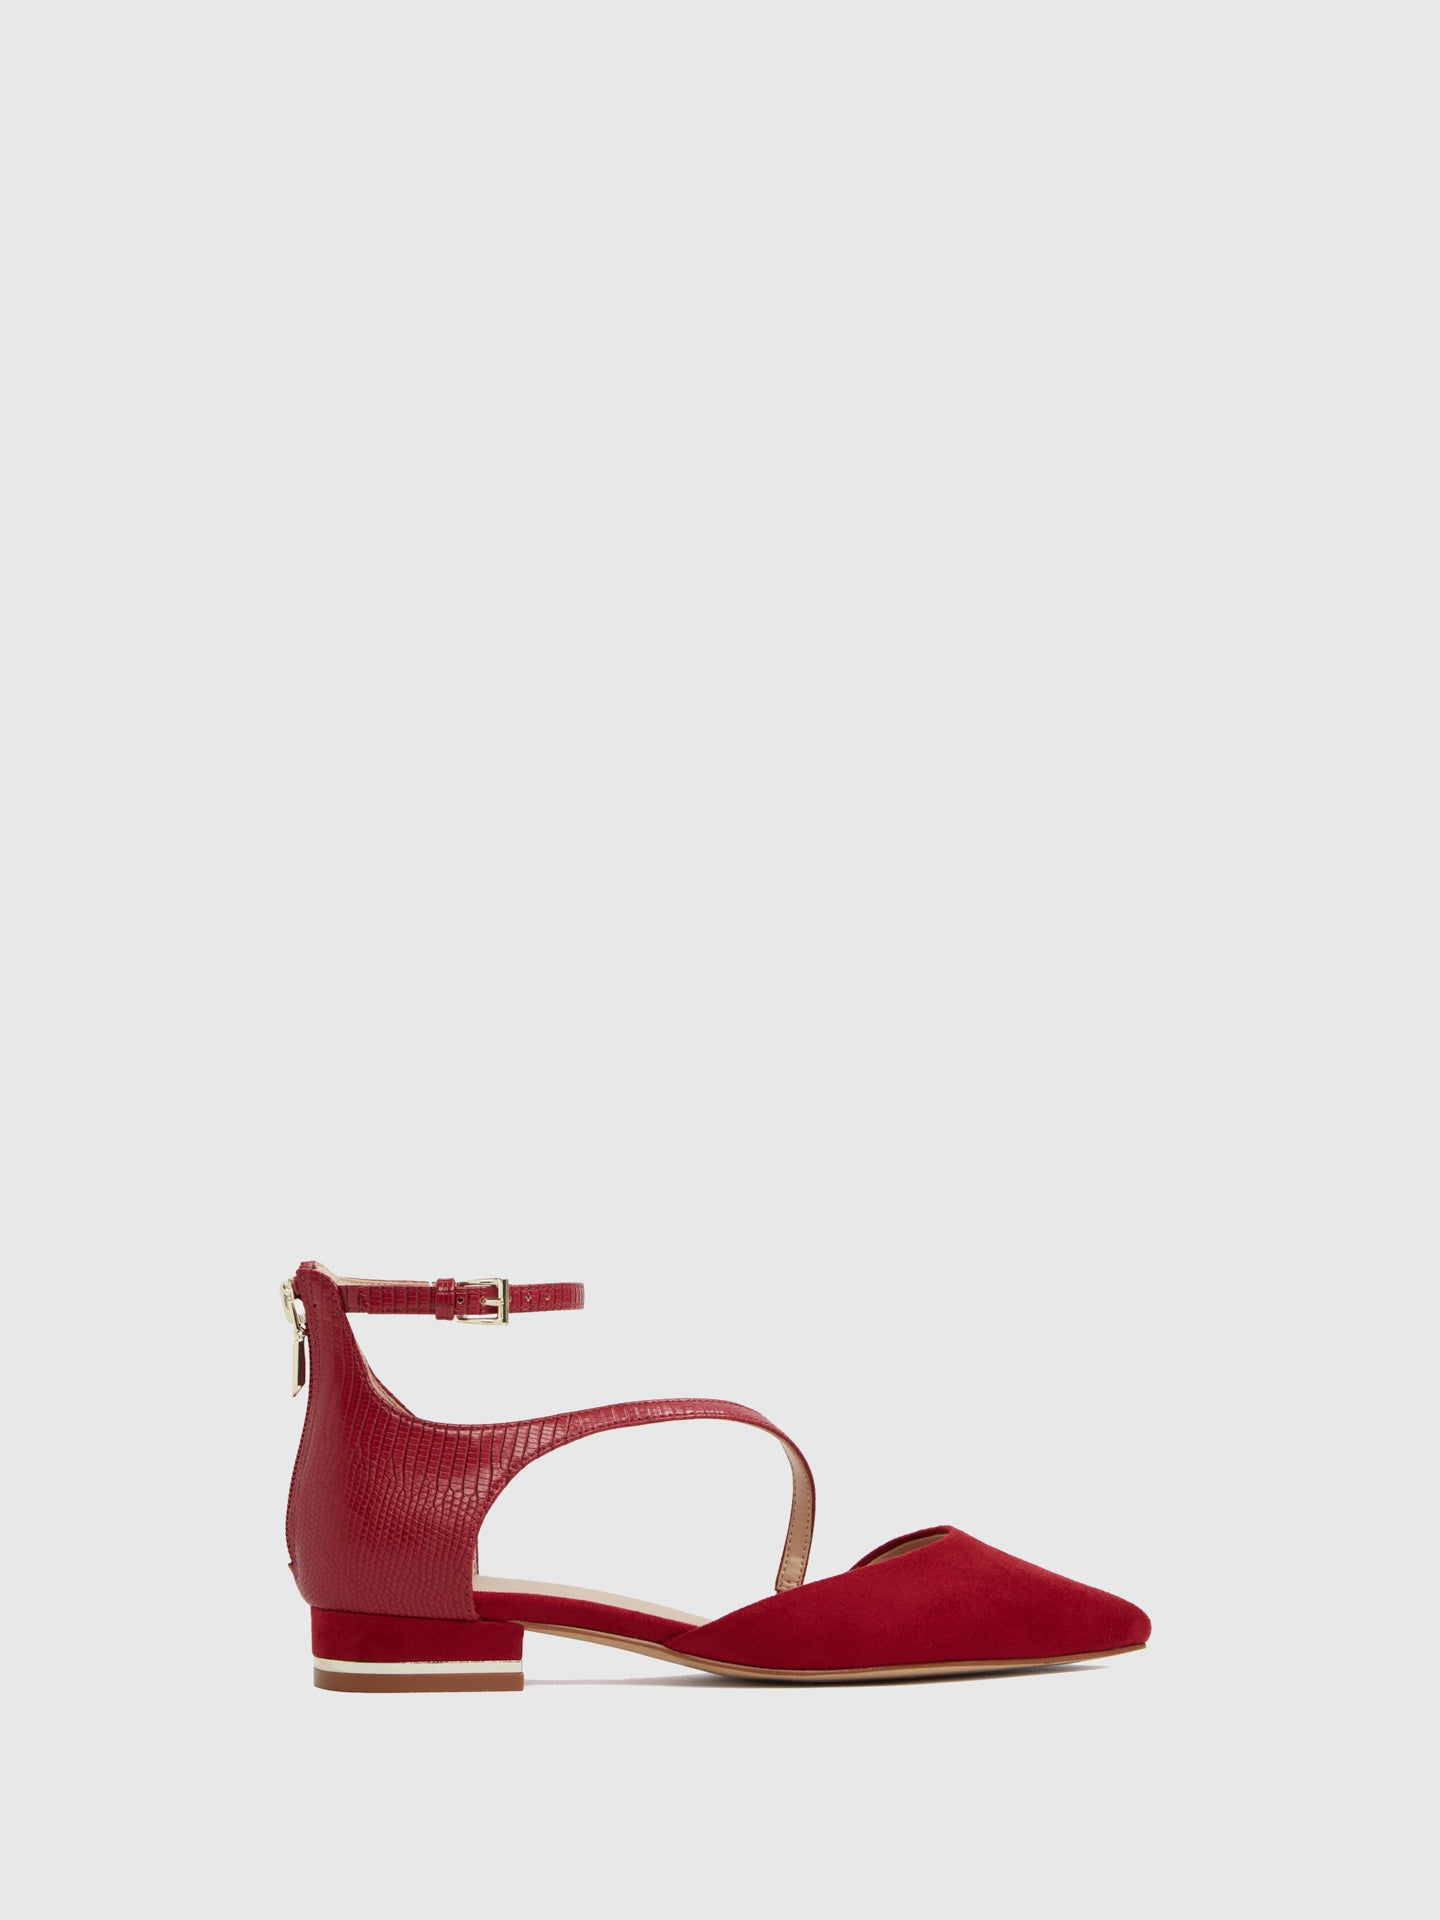 Aldo Red Ankle Strap Shoes